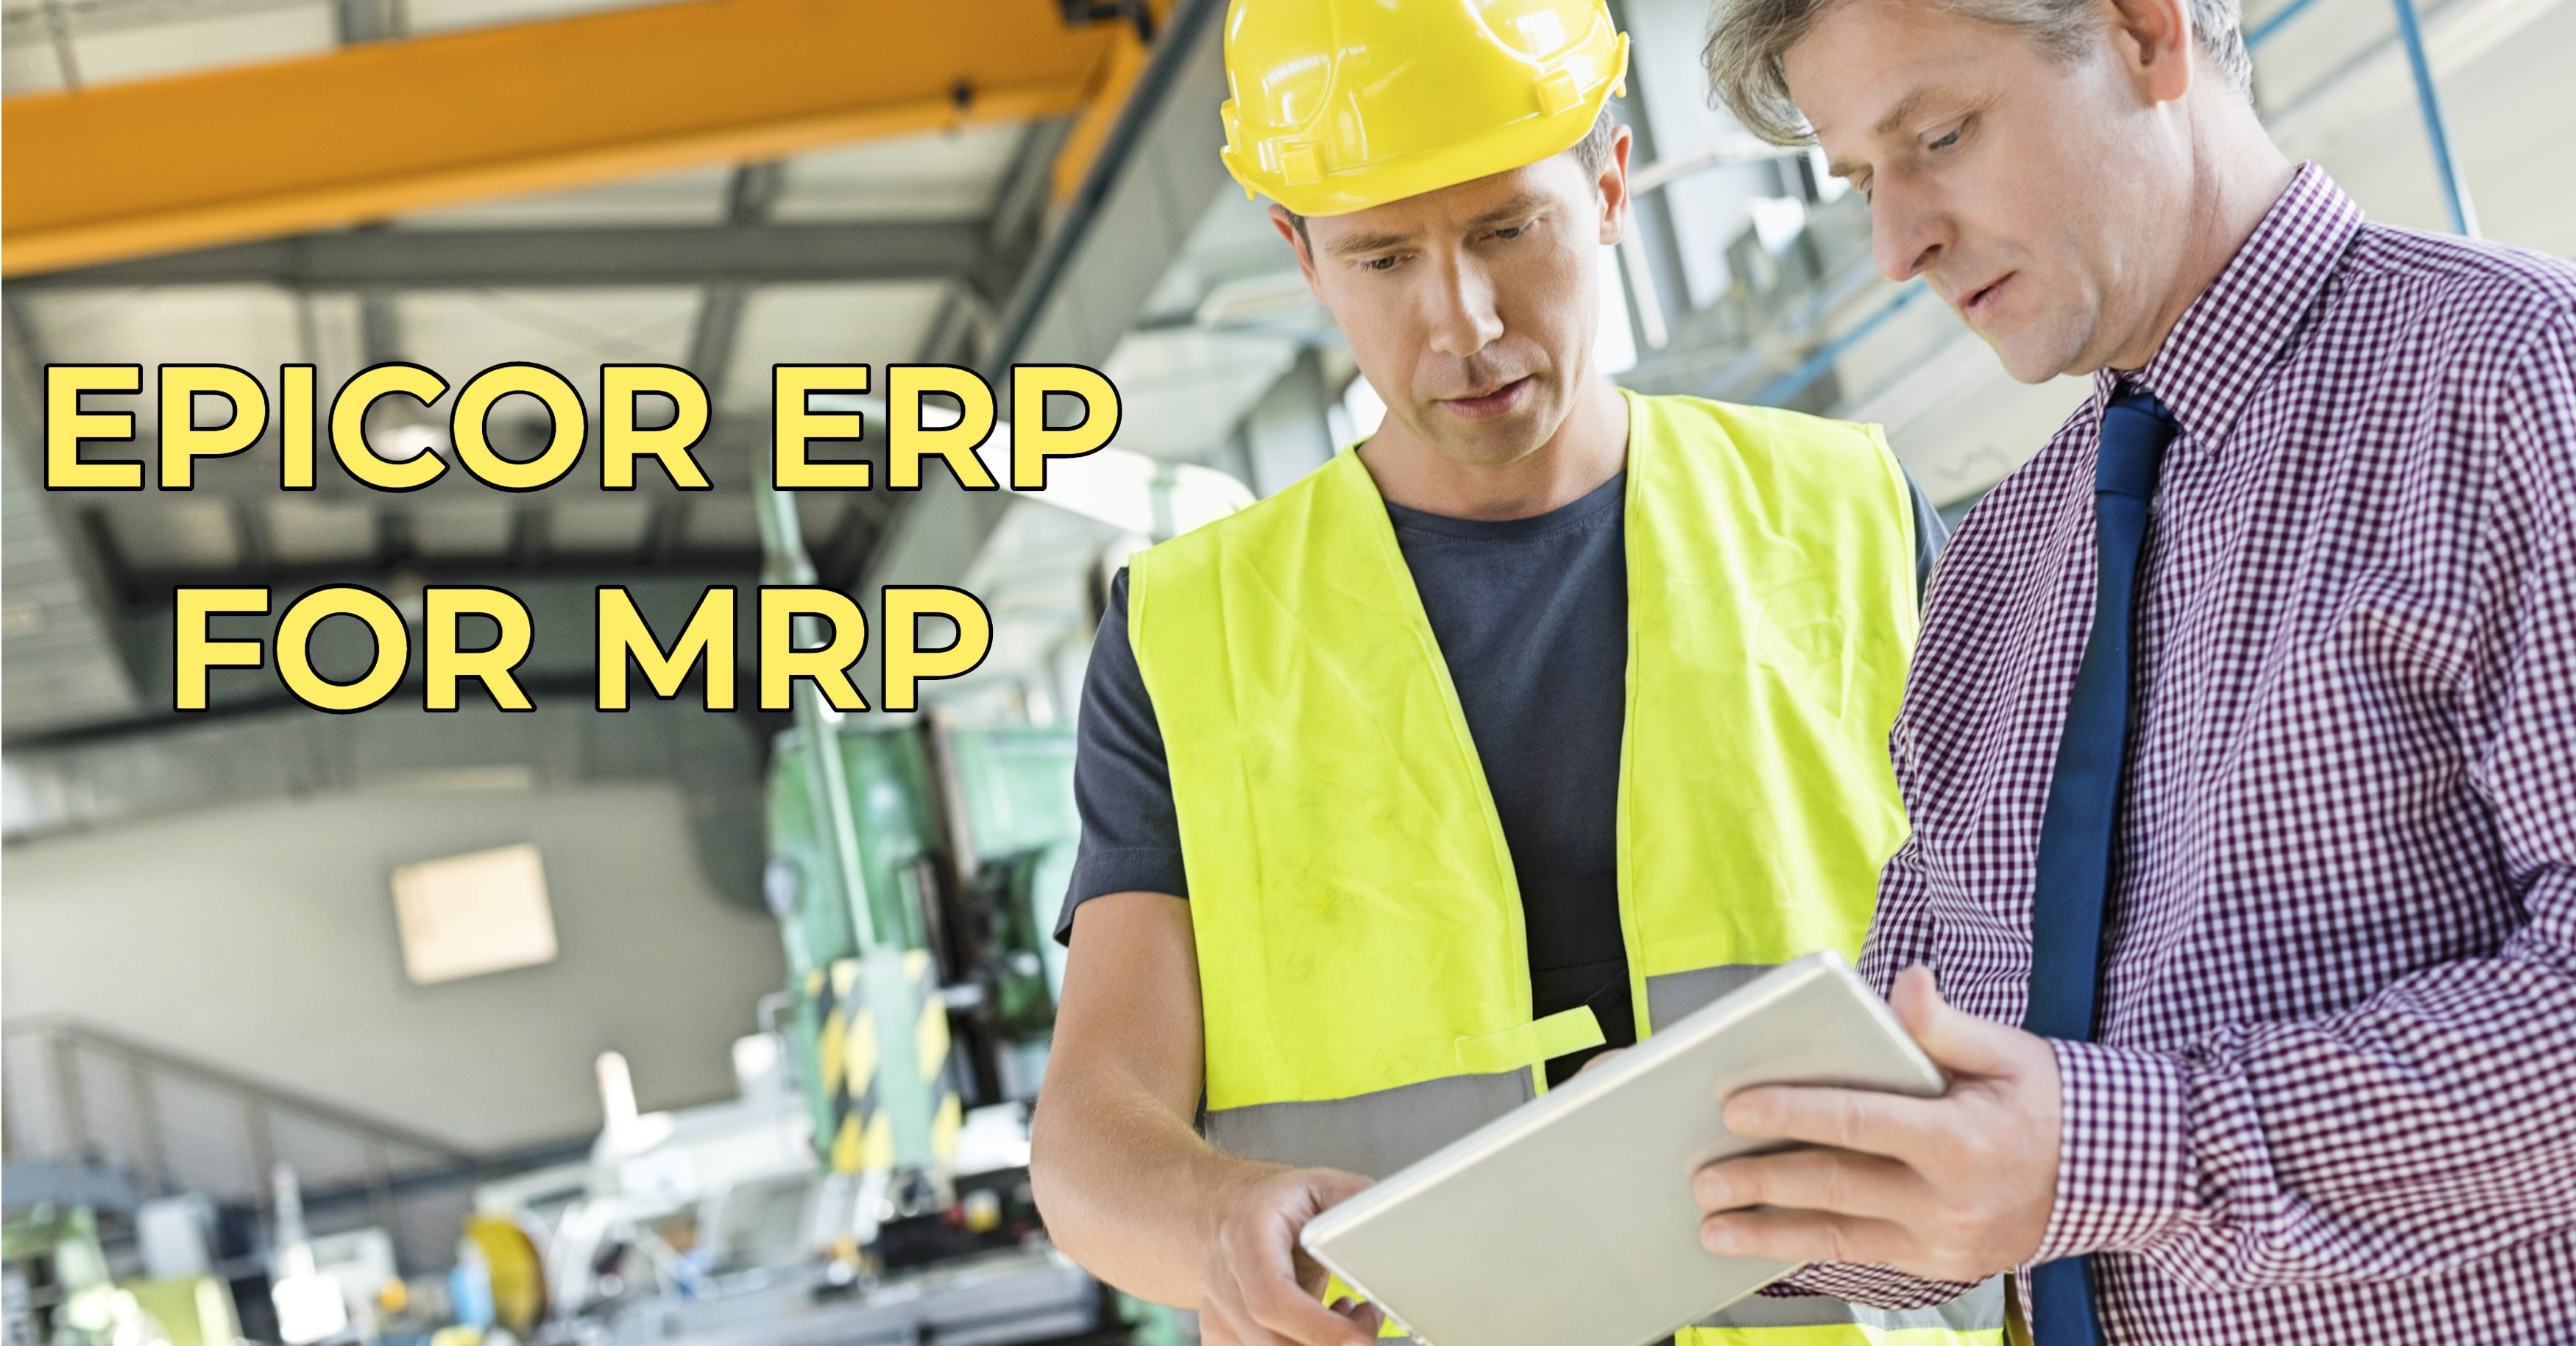 Fight Waste with Epicor's MRP Tools